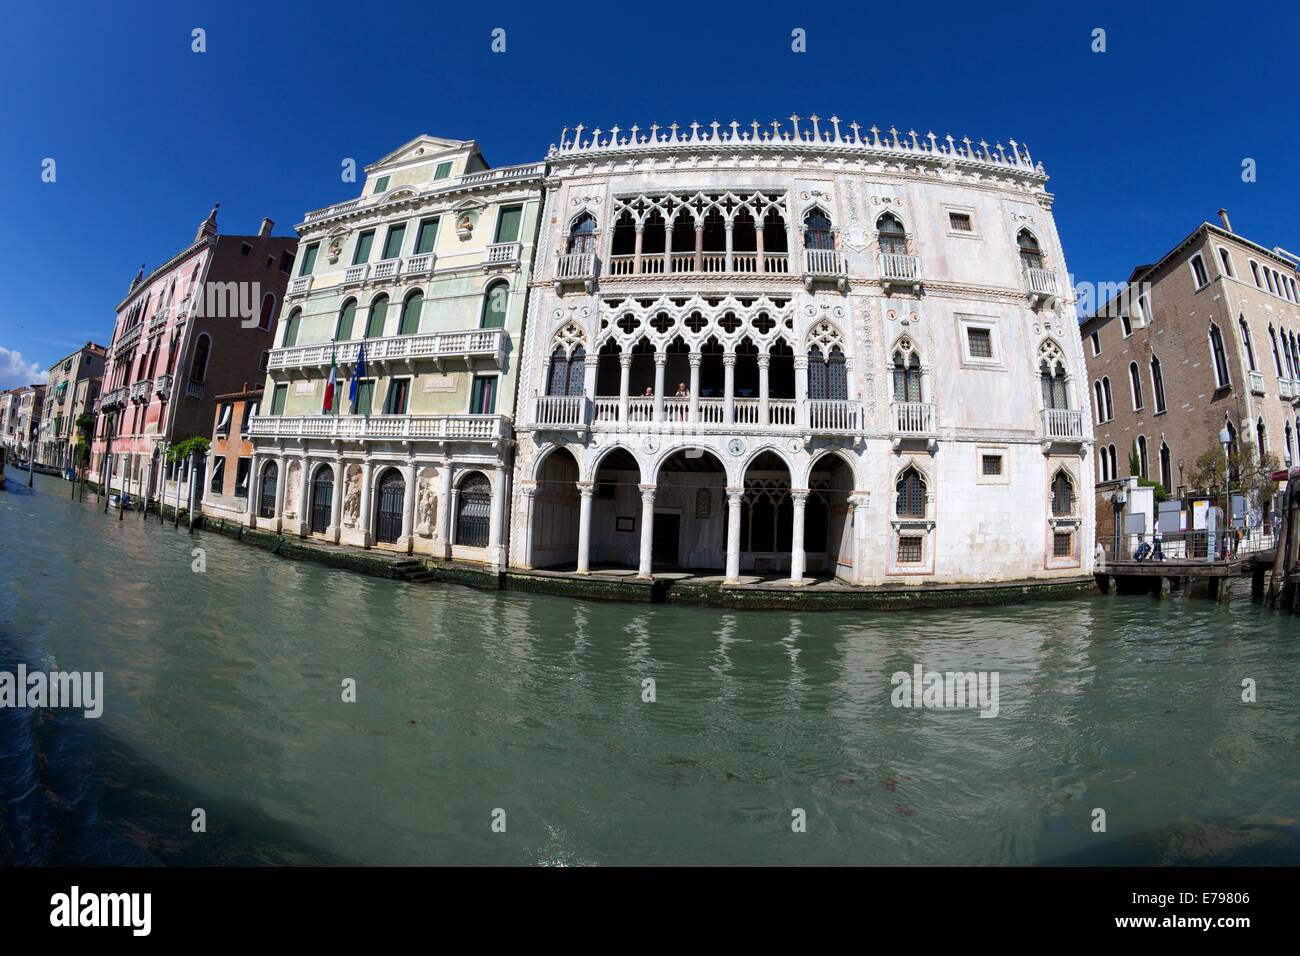 Ca' d'Oro, 15th century,  Grand Canal, Venice, Italy, Europe - Stock Image